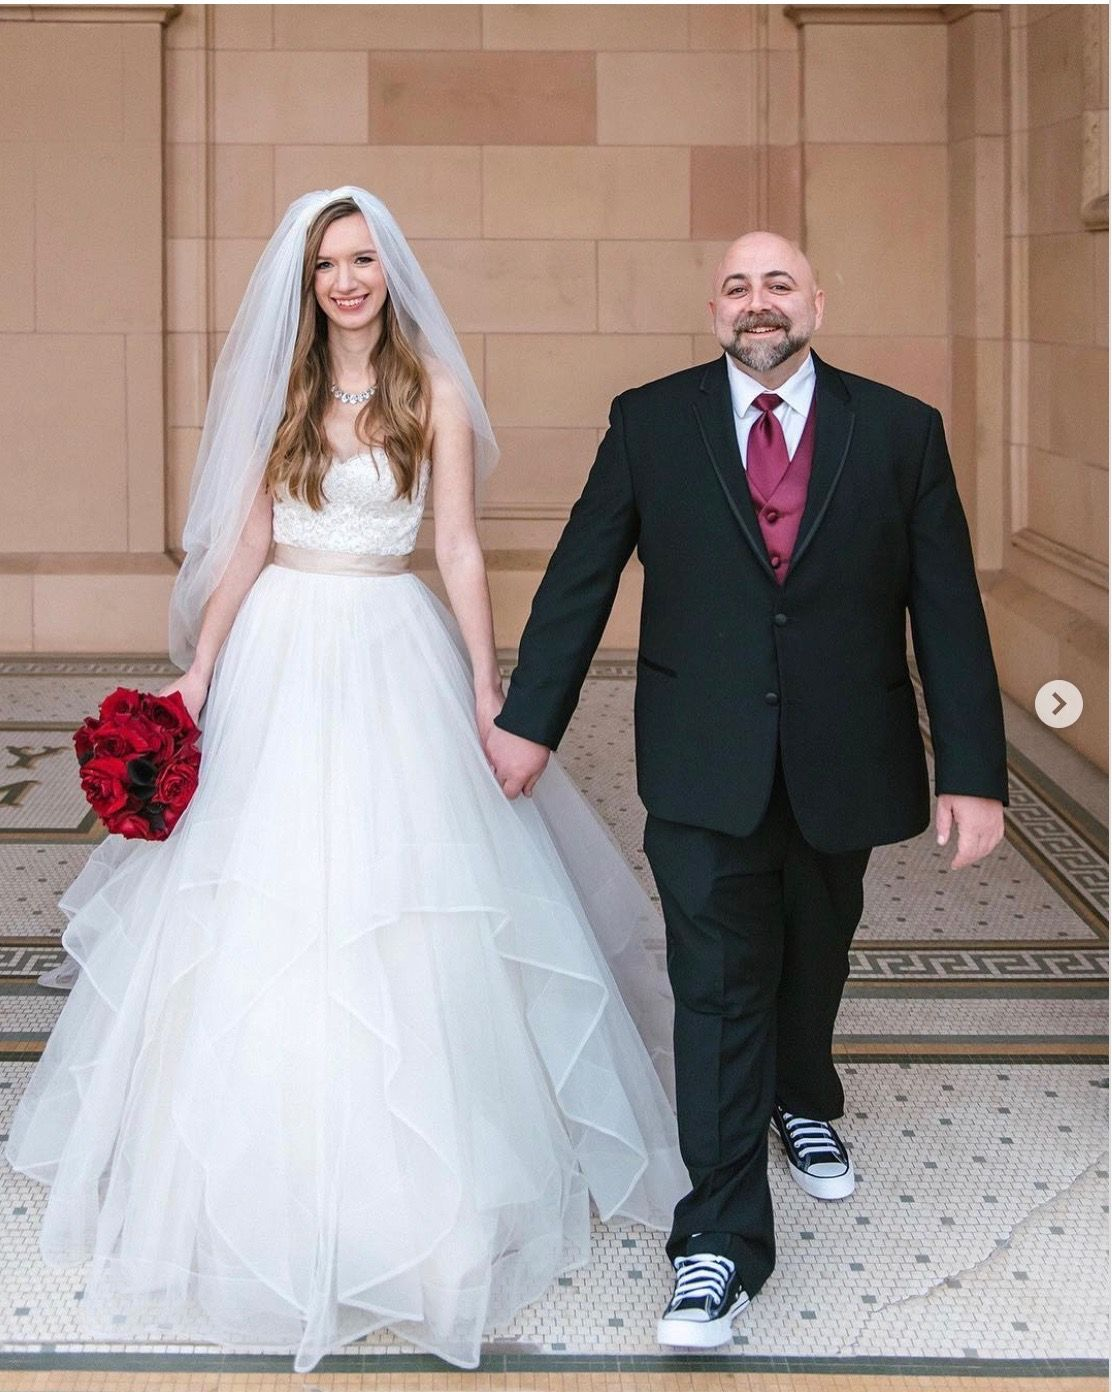 40db40308cbd6 Duff Goldman and Johnna Colby wed 2019 Ace of Cakes Star | Famous ...